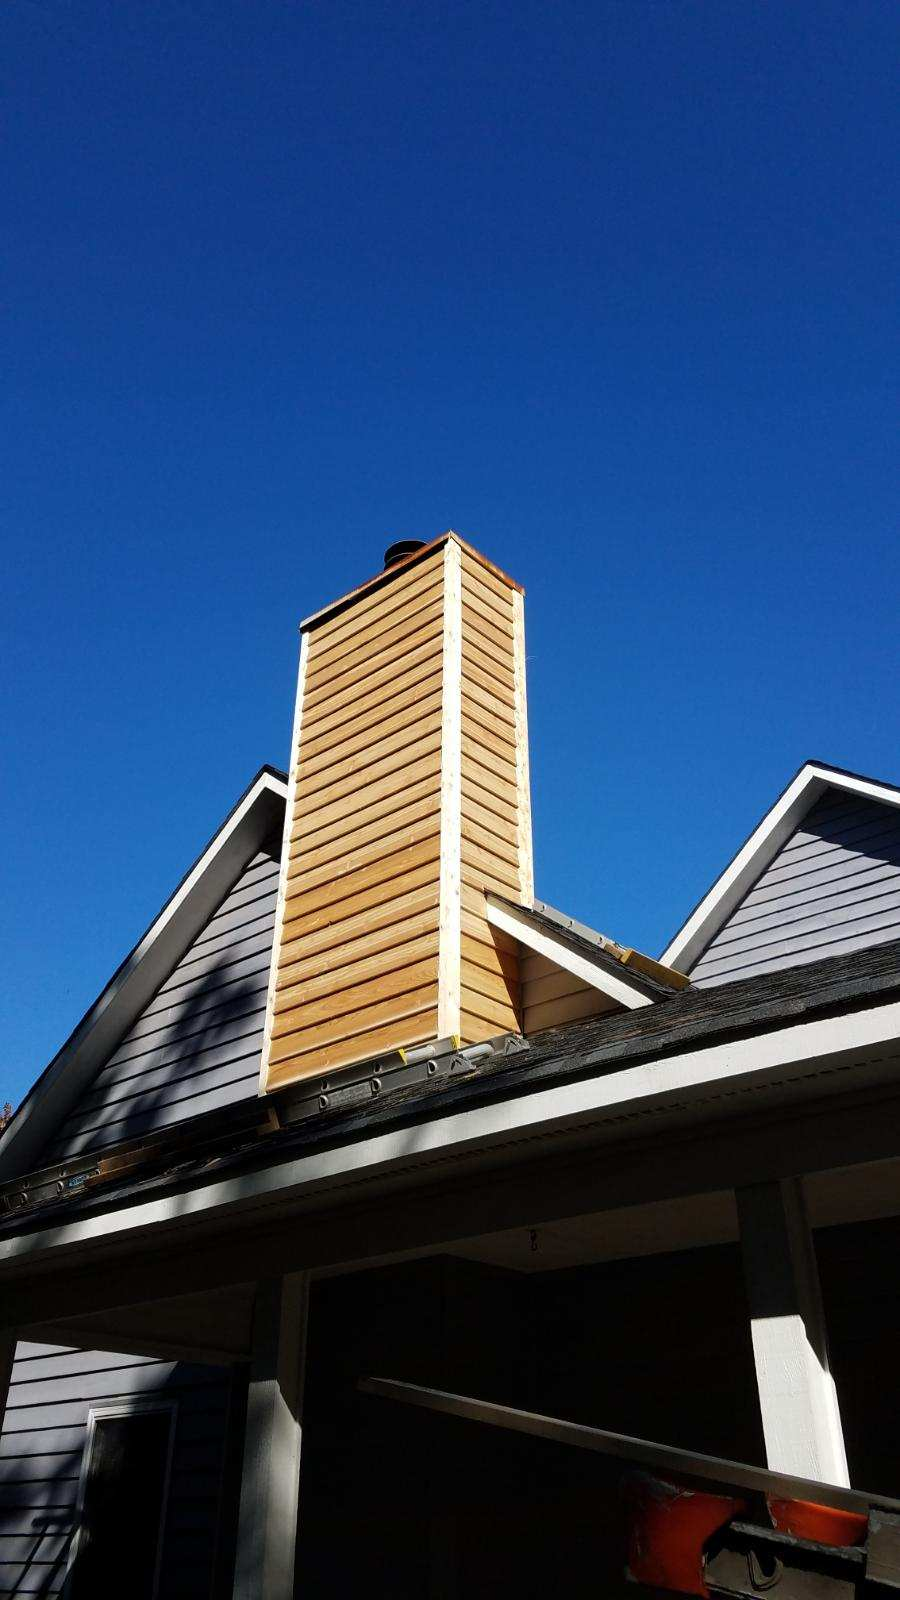 Fifth picture of chimney repair